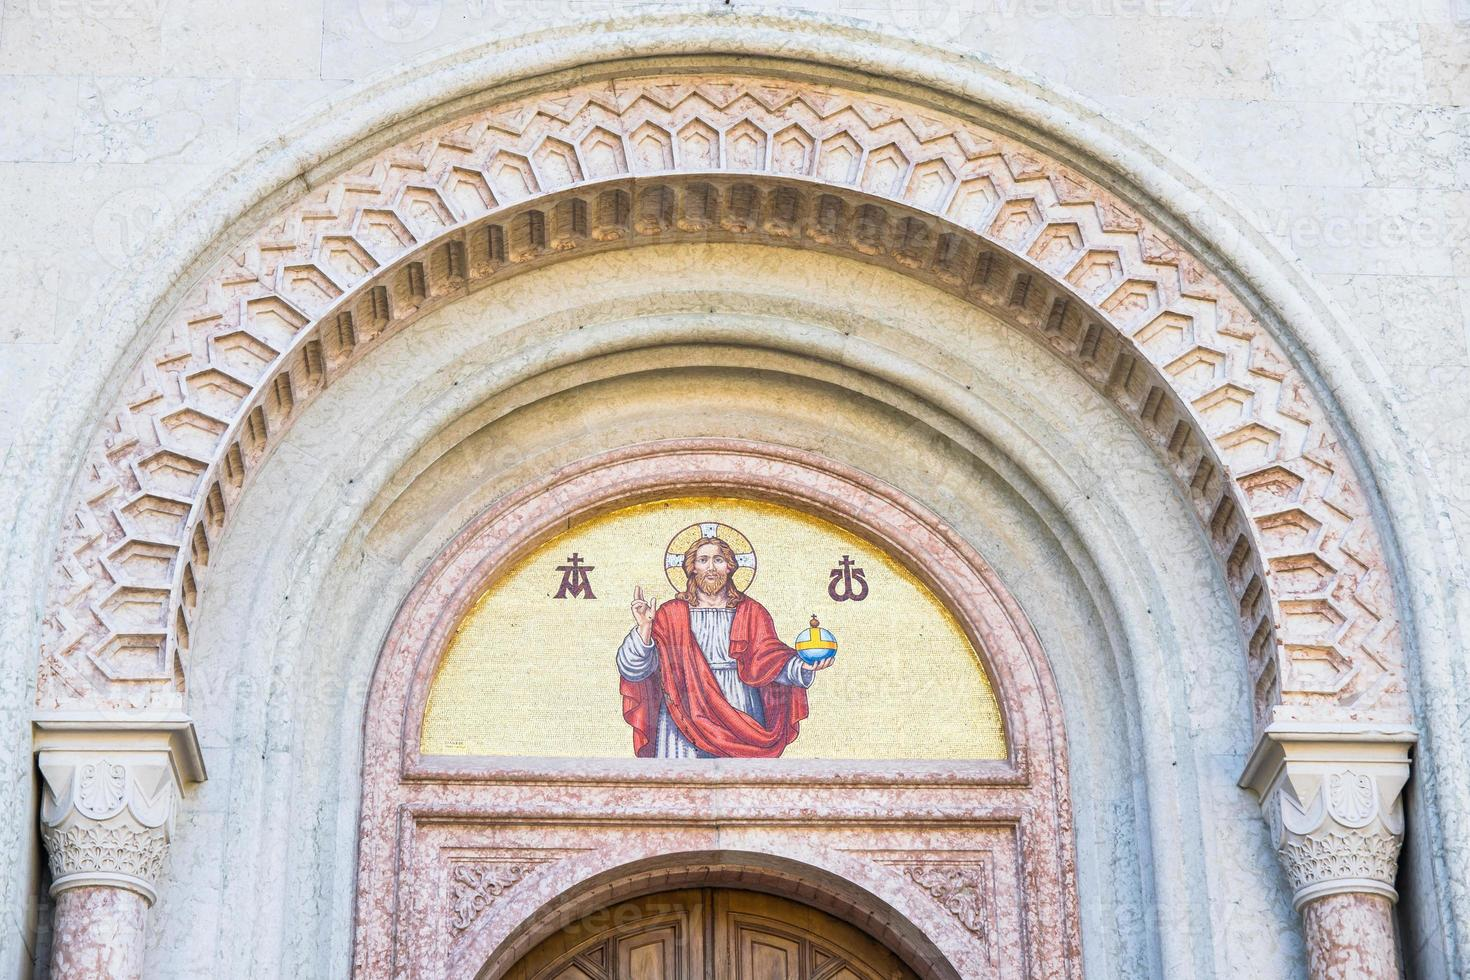 God's image mosaic above the doorway of a church. photo